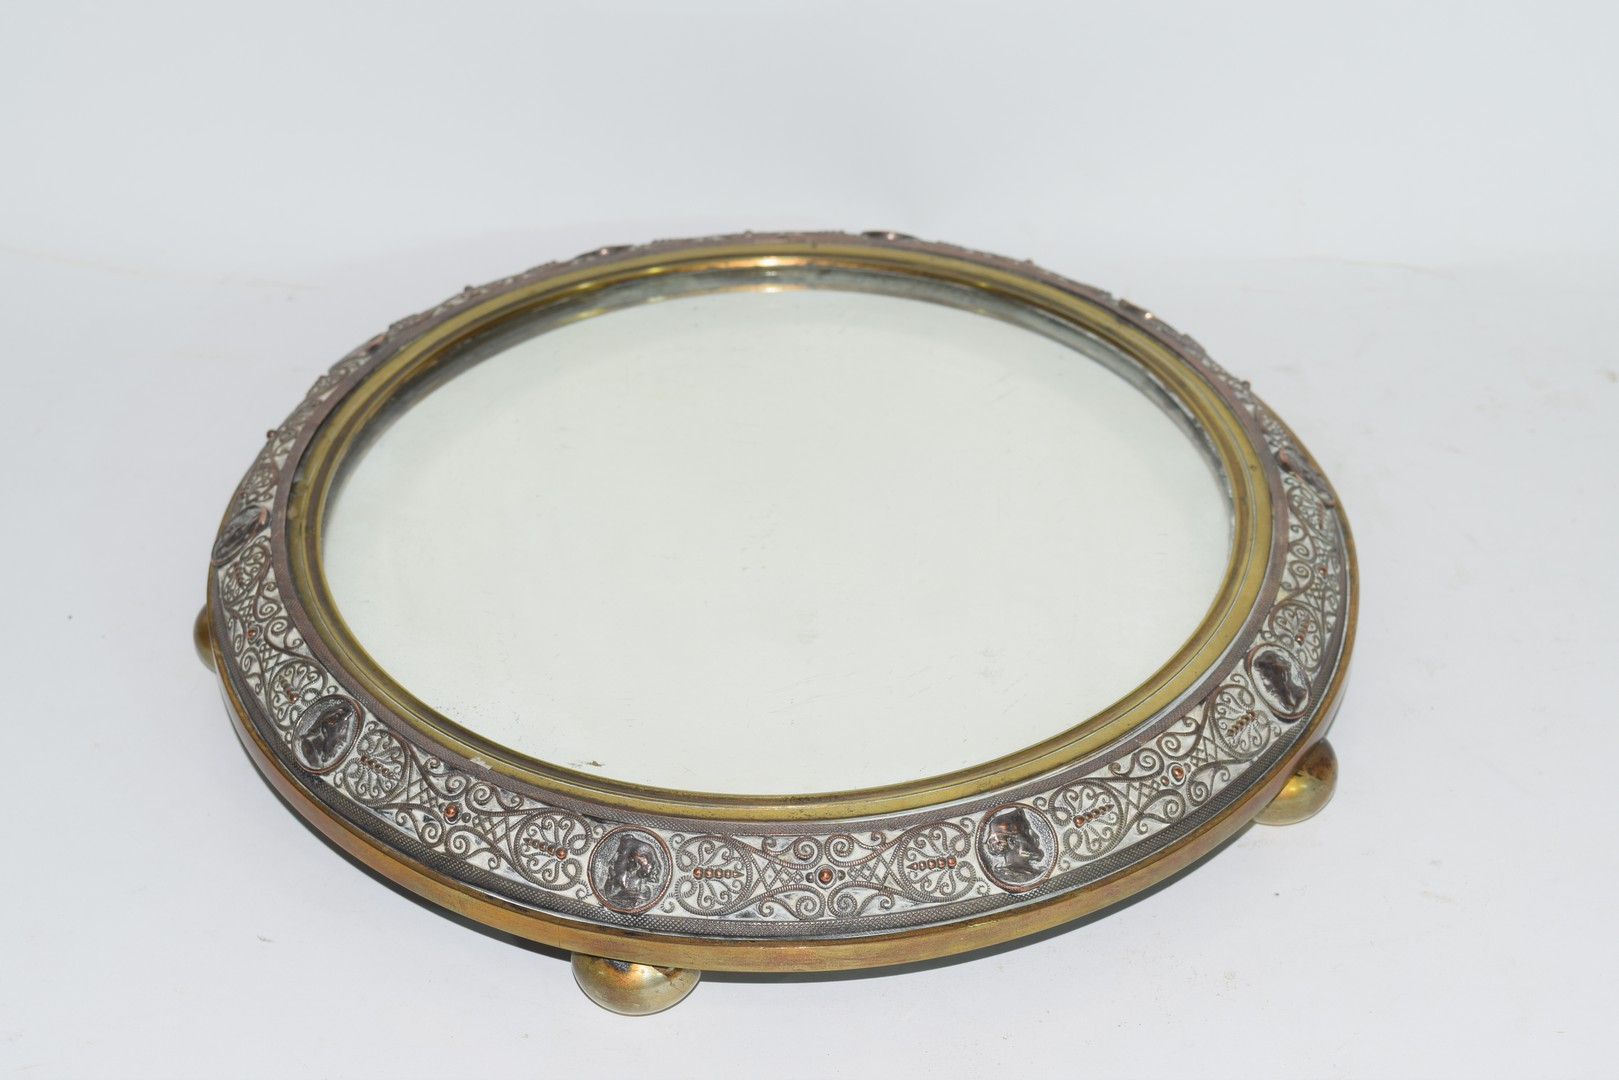 Victorian copper and brass mounted circular mirrored table stand decorated with figural and - Image 3 of 6